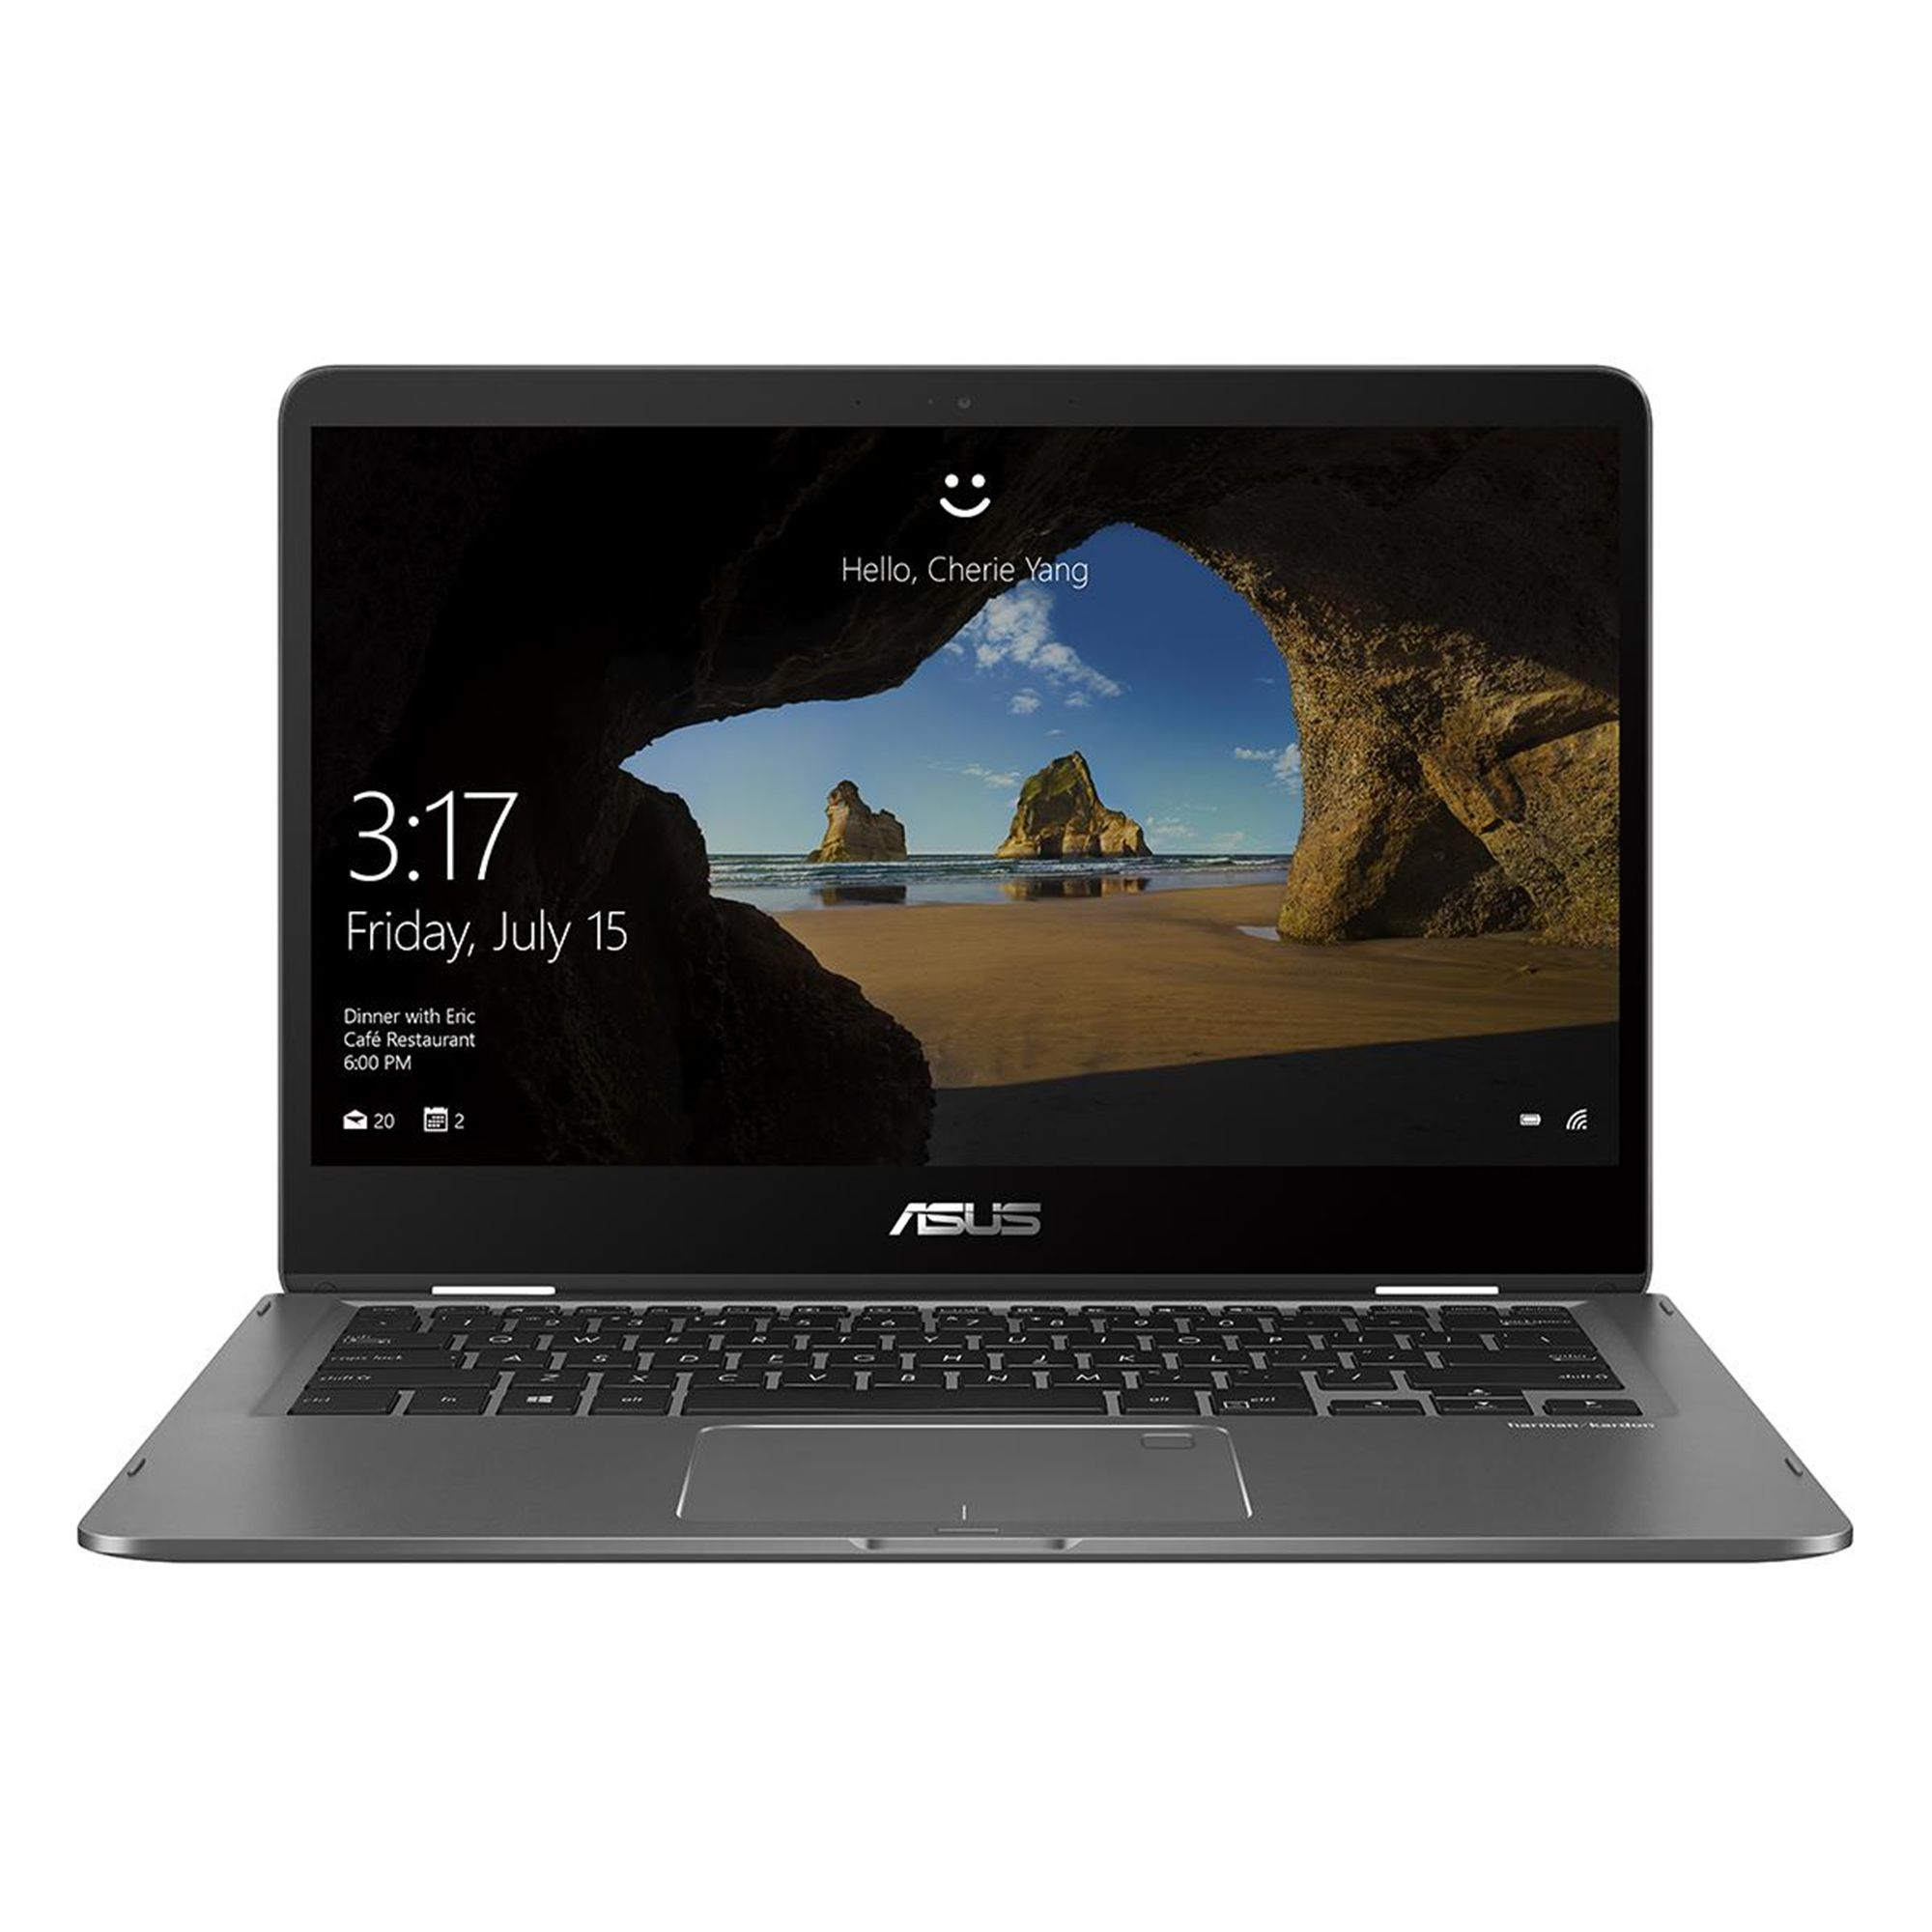 Ultrabook Asus ZenBook Flip UX461FA 14 Full HD Touch Intel Core i7-8565U RAM 8GB SSD 512GB Windows 10 Pro Gri